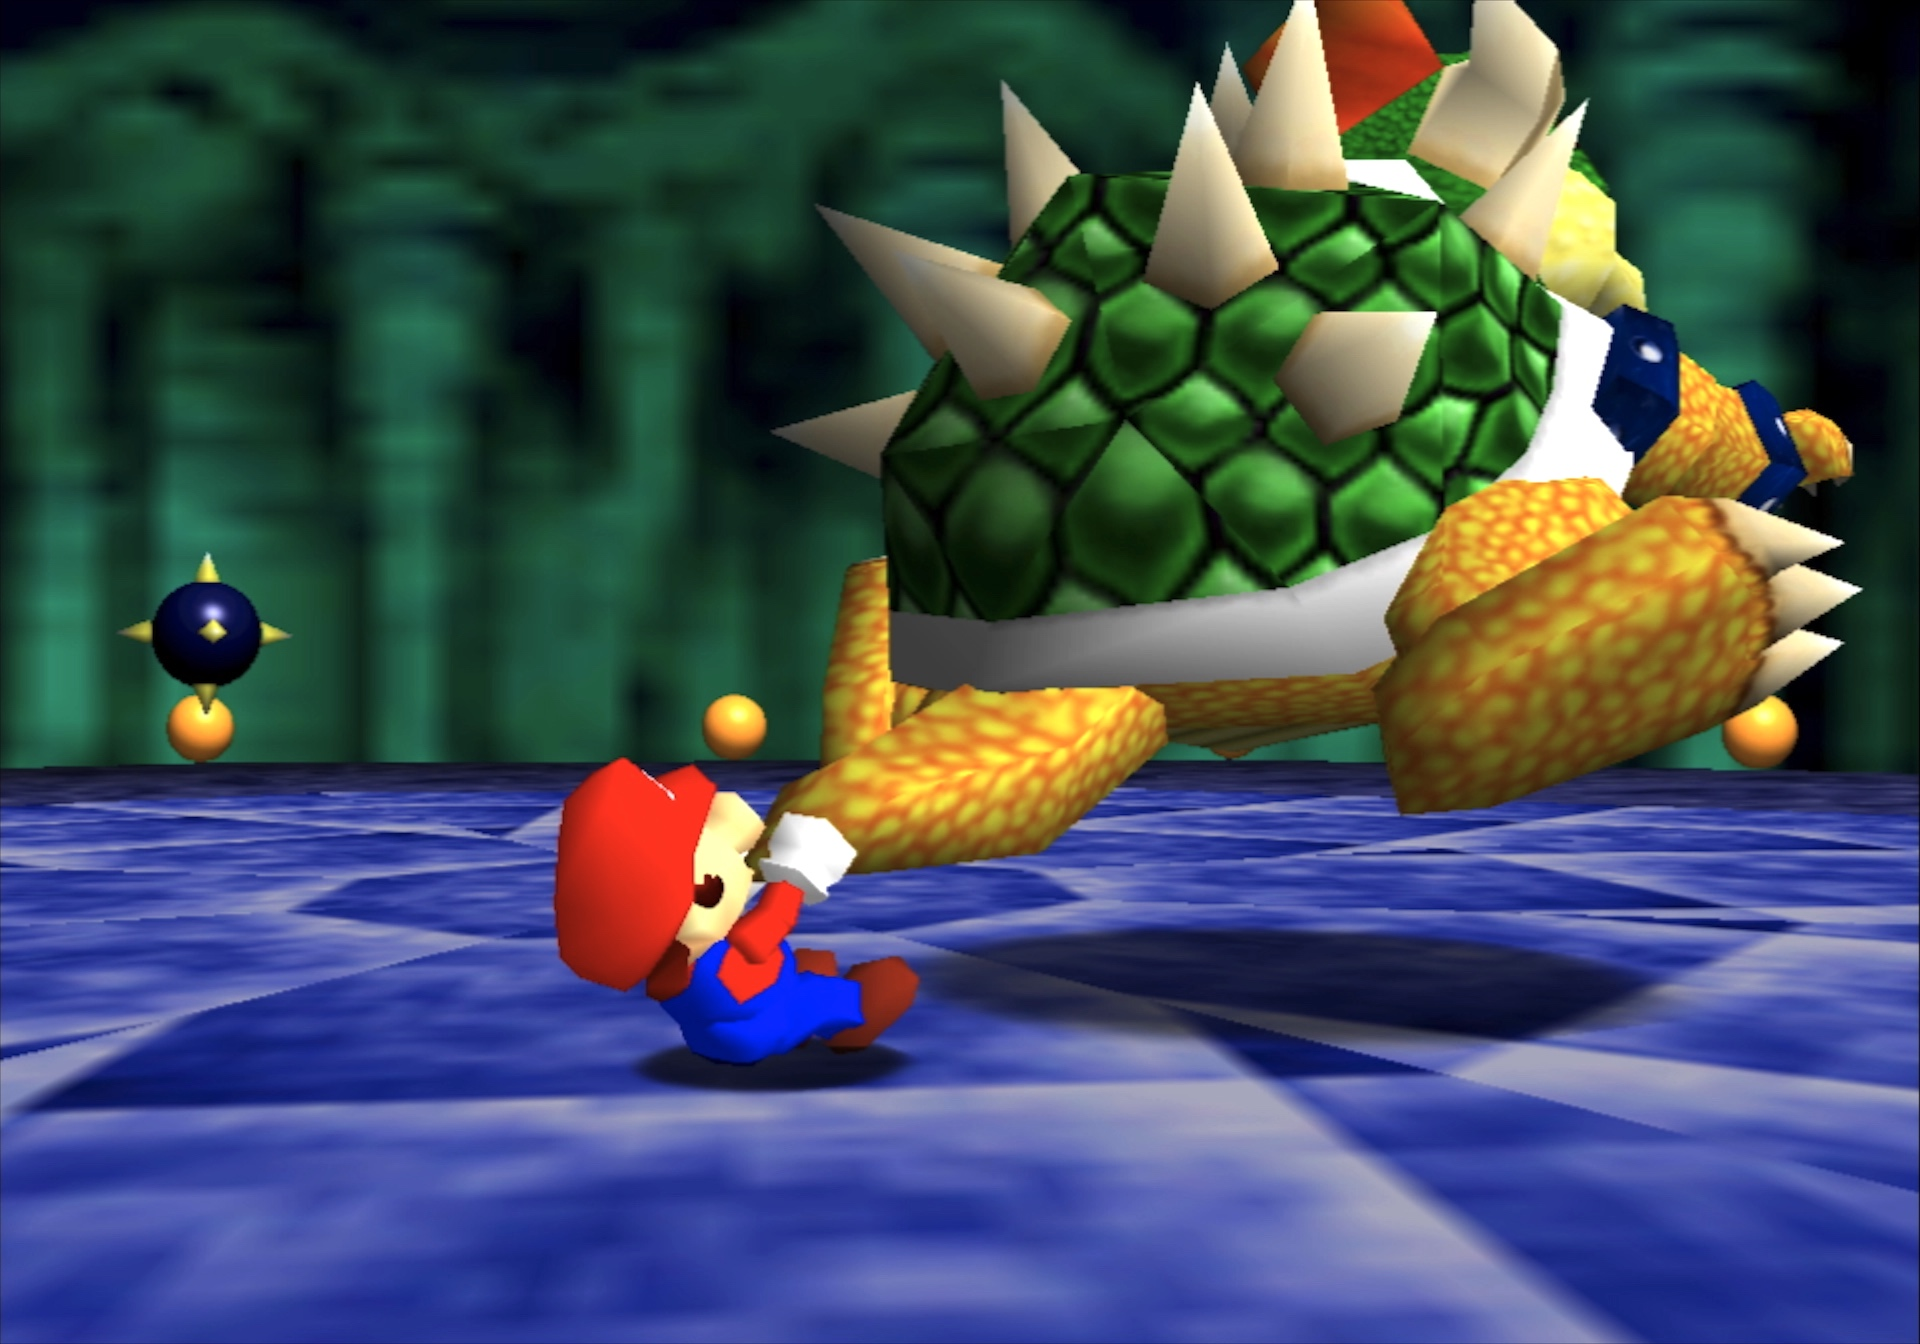 Mario swings Bowser by the tail in a boss fight from Super Mario 64